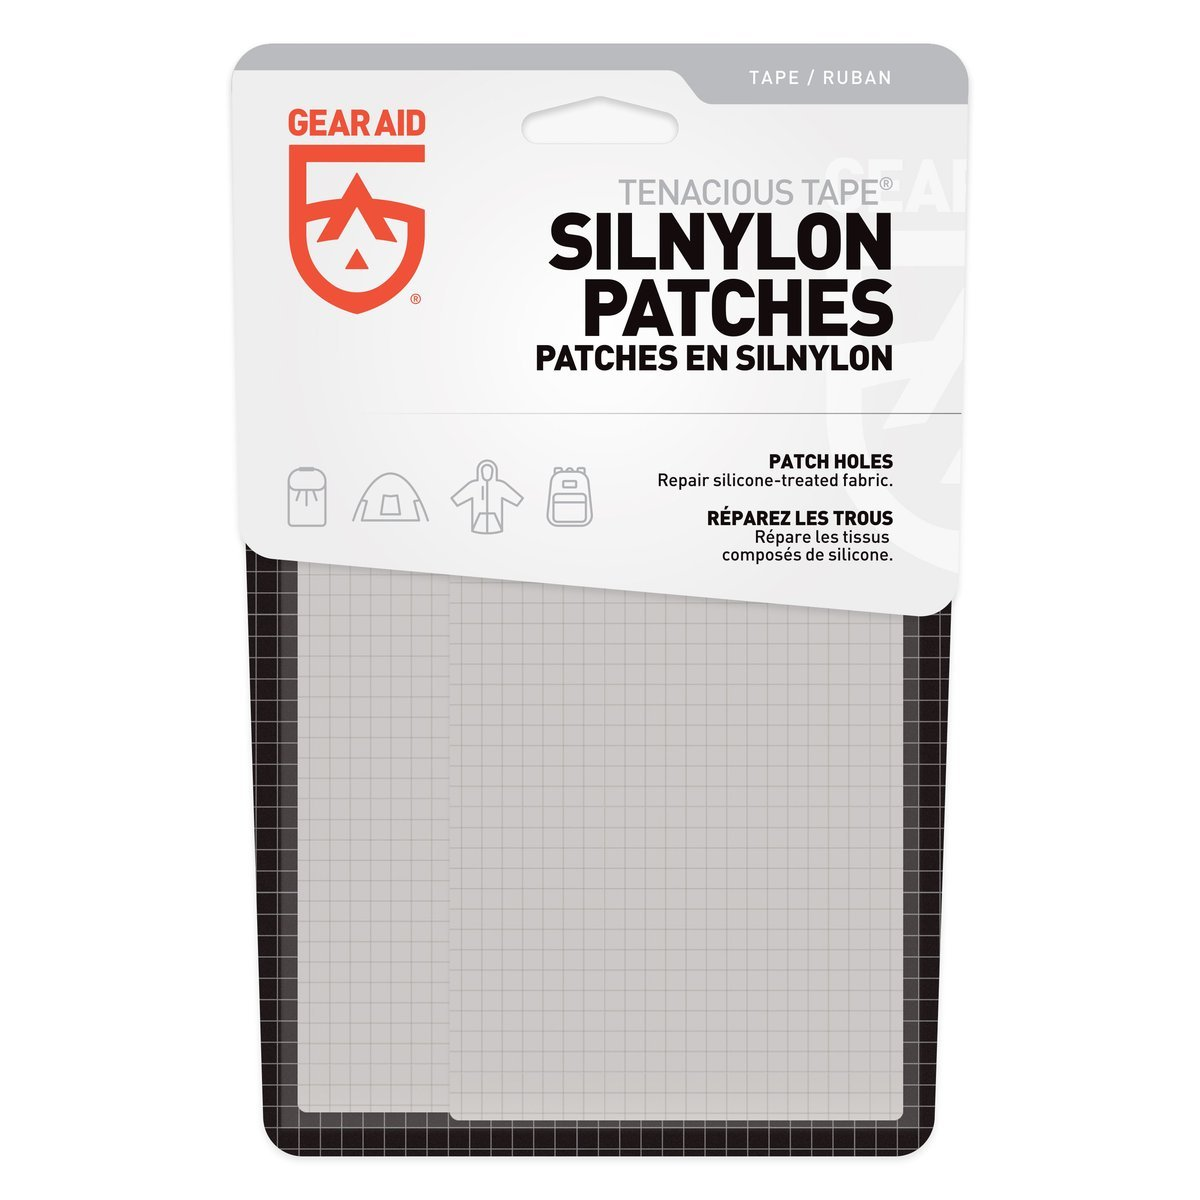 Tenacious Tape  - Silnylon Patches